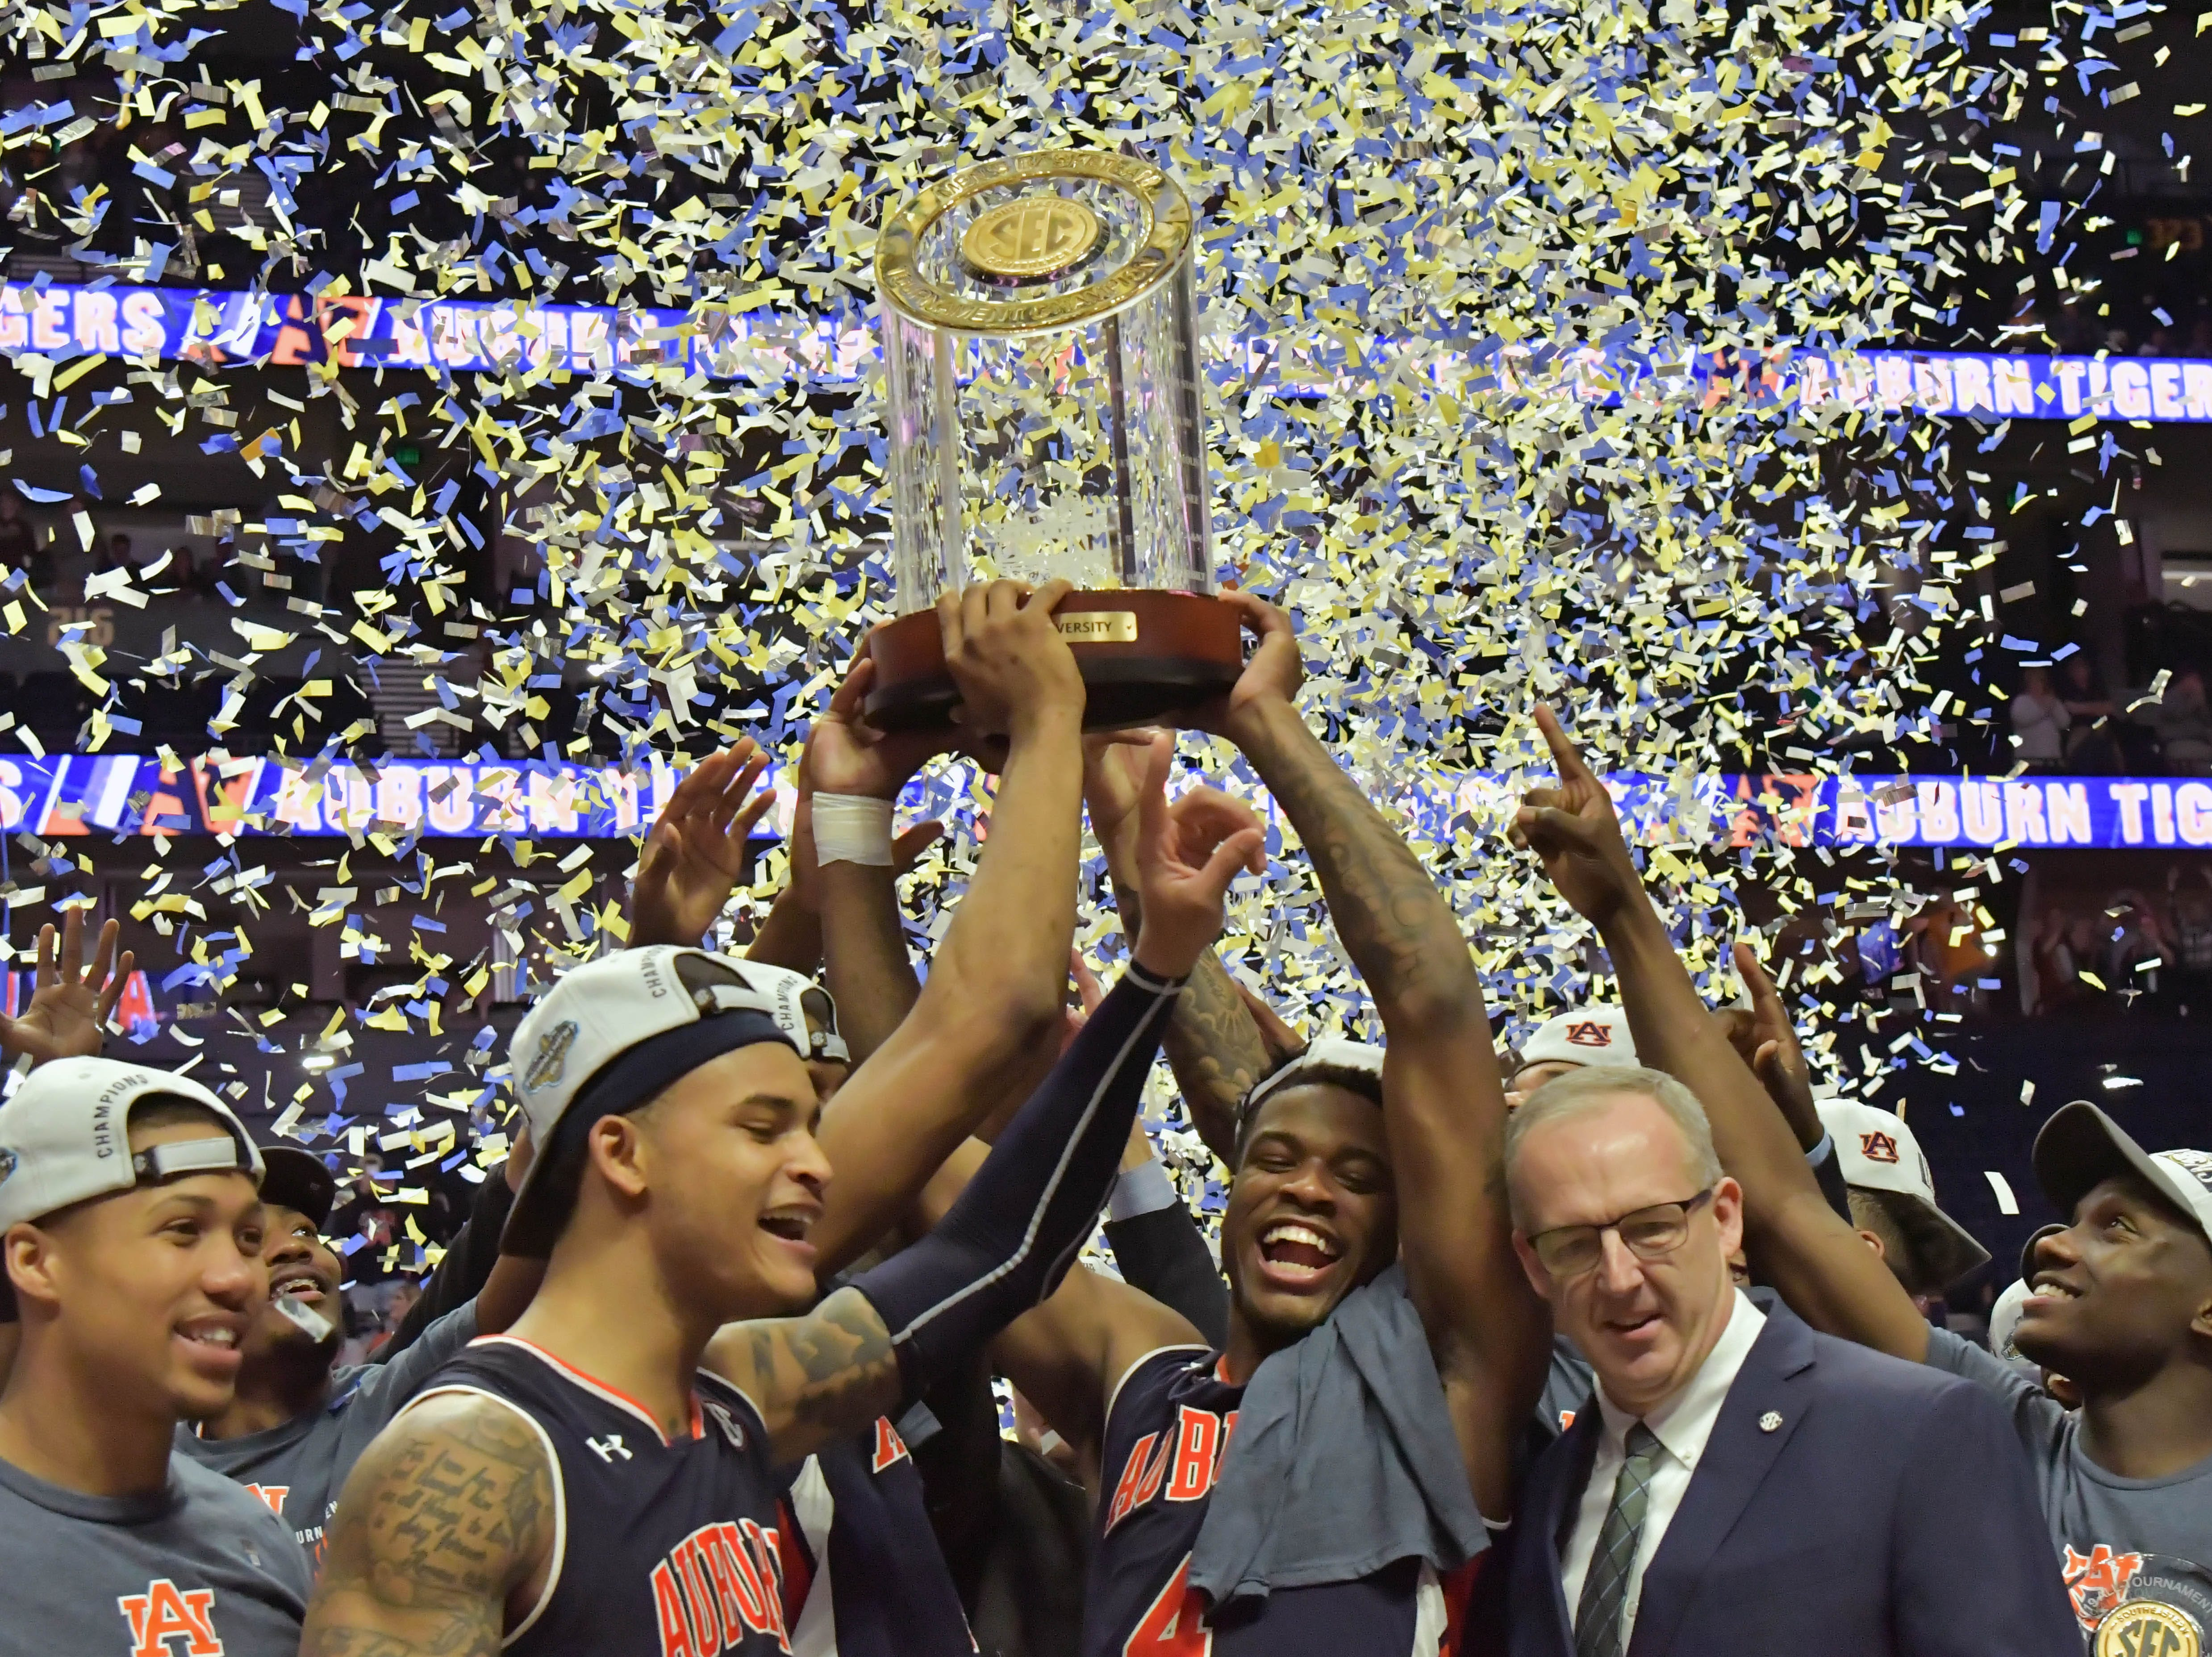 Mar 17, 2019; Nashville, TN, USA; Auburn Tigers celebrate after defeating the Tennessee Volunteers in the  championship game of the SEC conference tournament at Bridgestone Arena. Auburn won 84-64. Mandatory Credit: Jim Brown-USA TODAY Sports